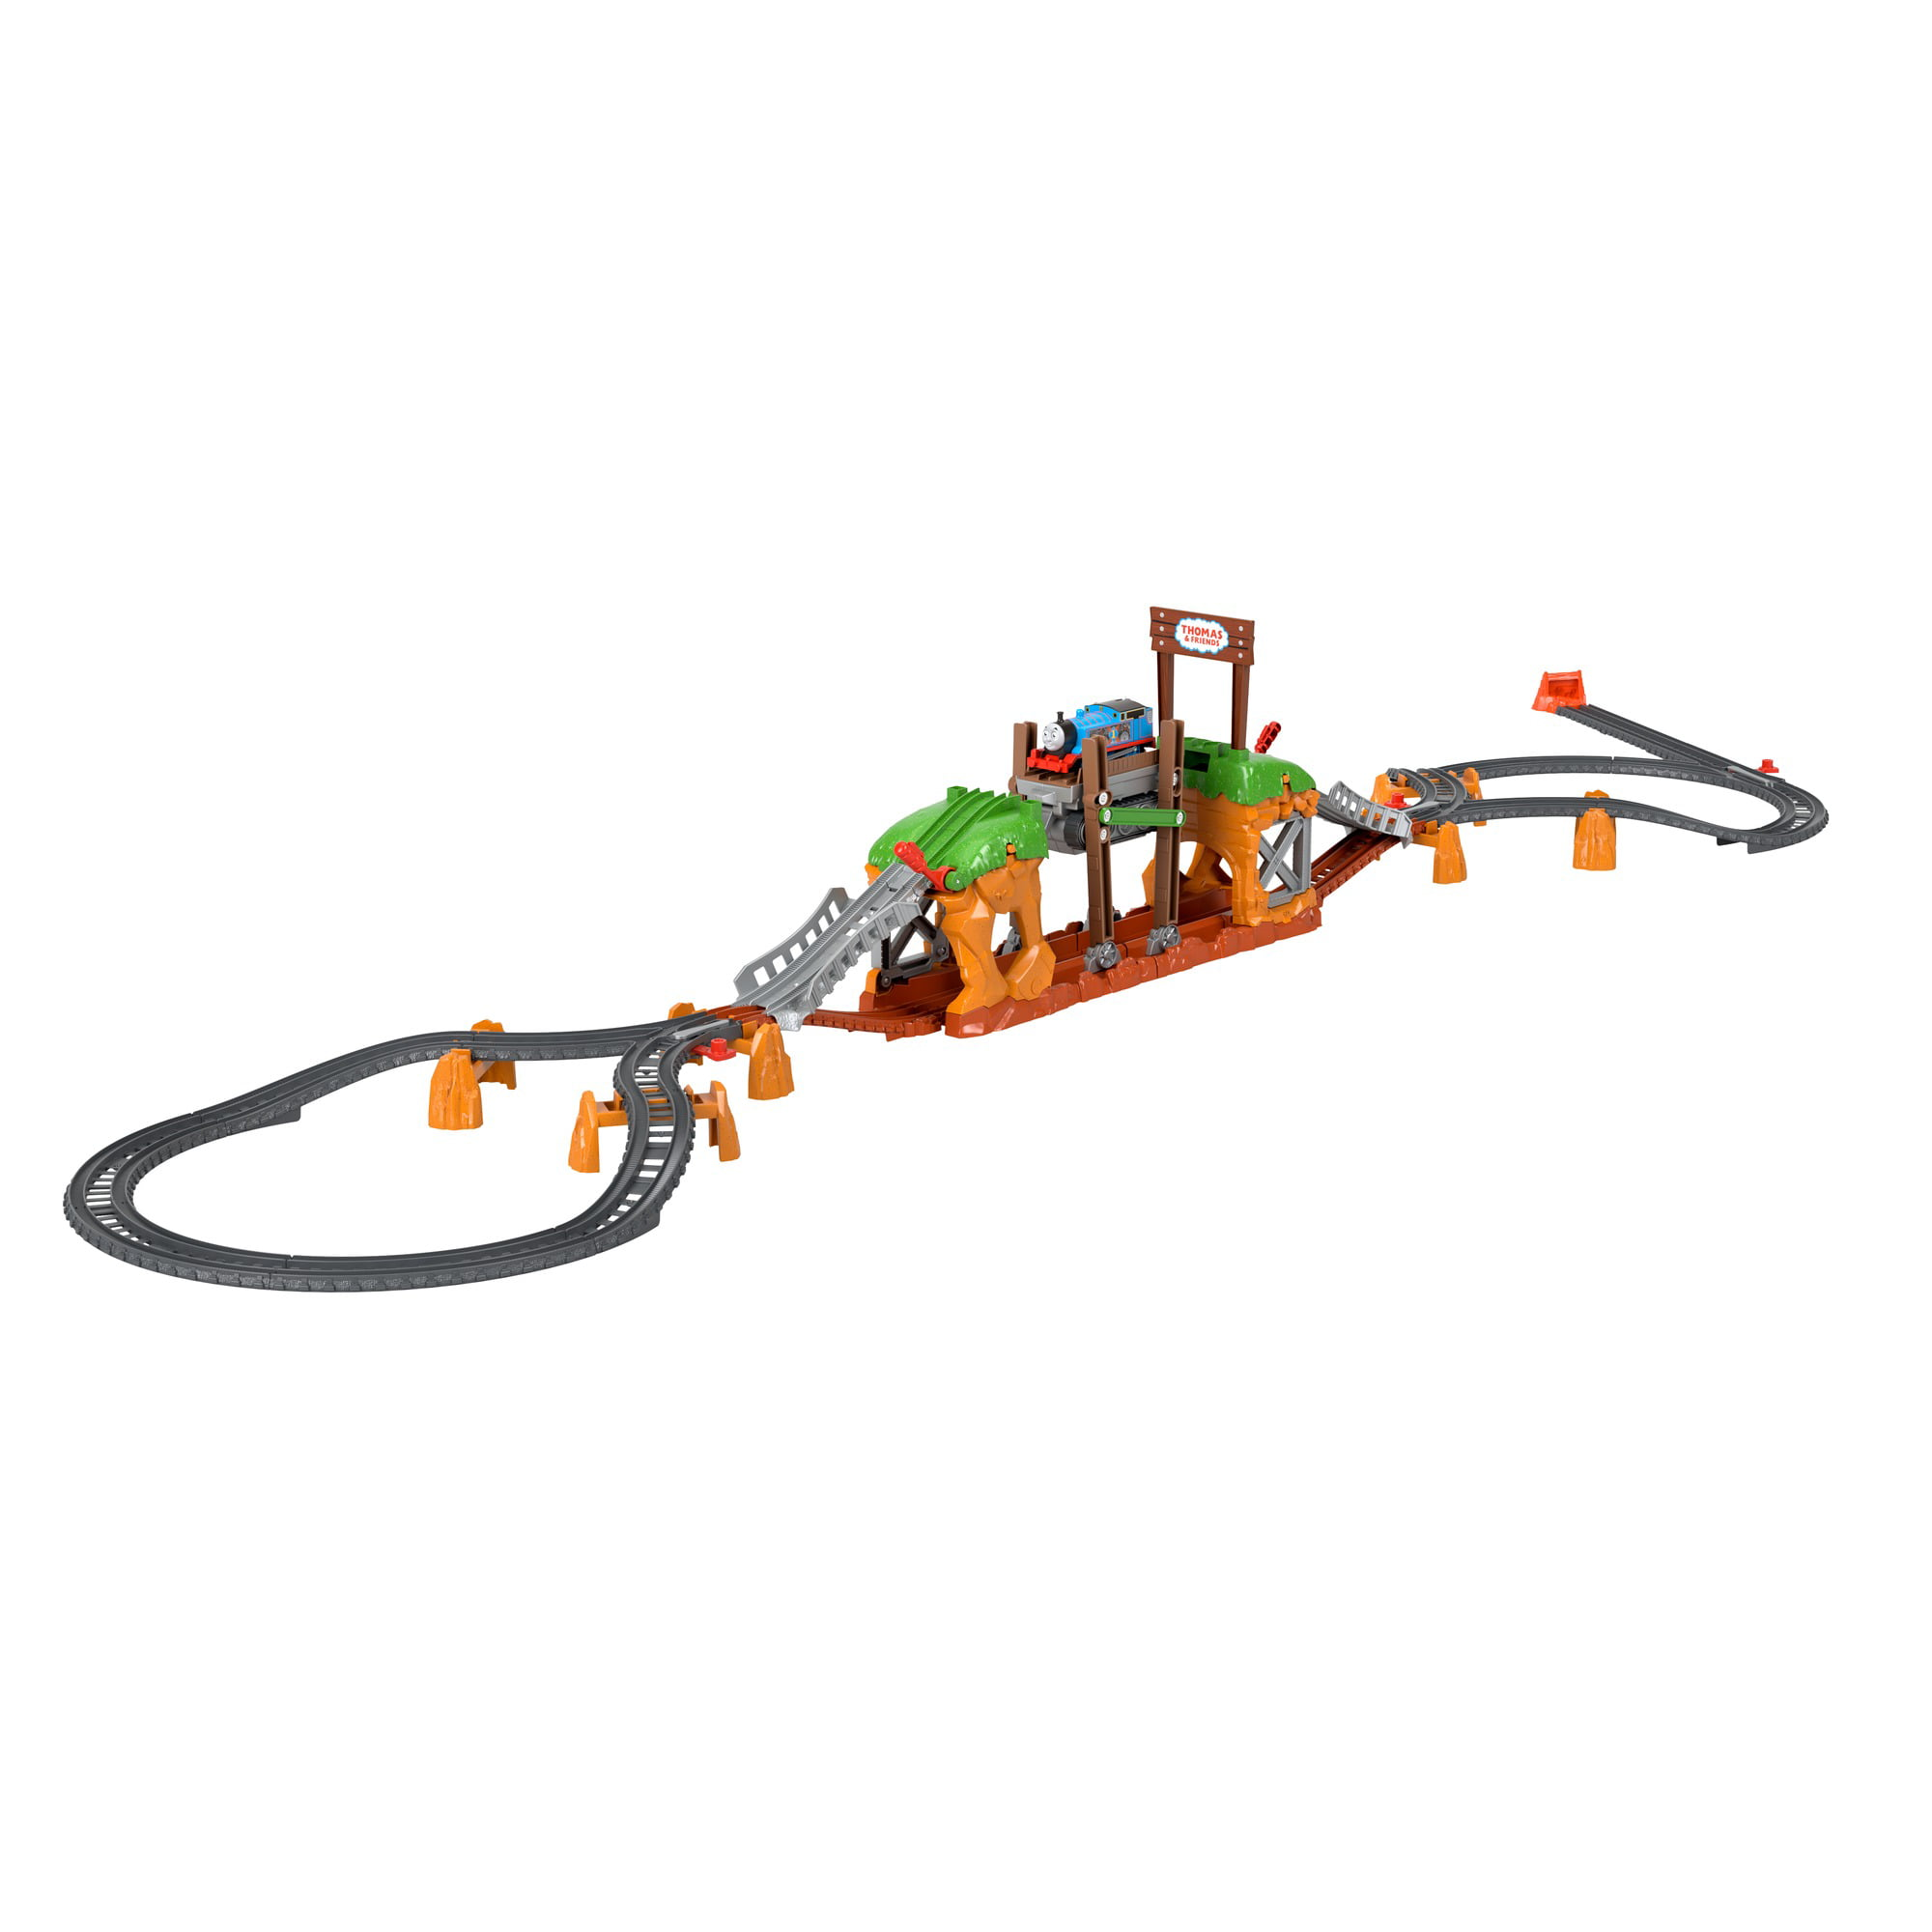 Thomas & Friends Walking Bridge Motorized Train Set, 32 Pieces - Walmart.com